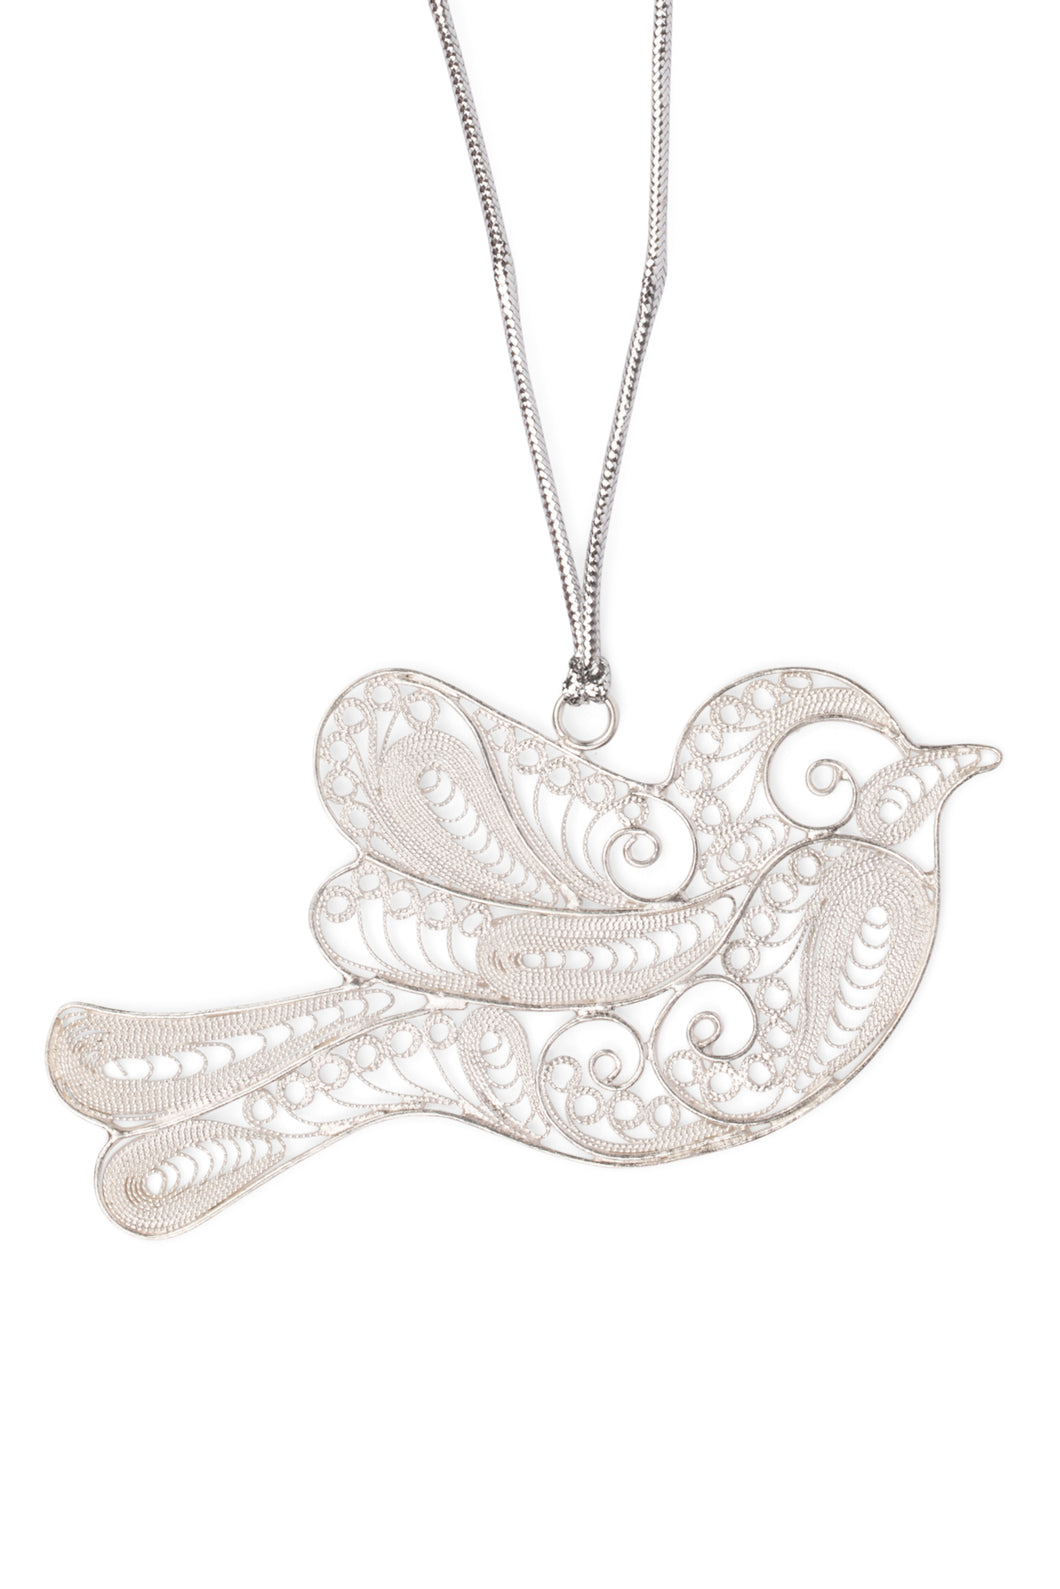 Silver Plated Copper Ornament - Filigree  Dove Ornament